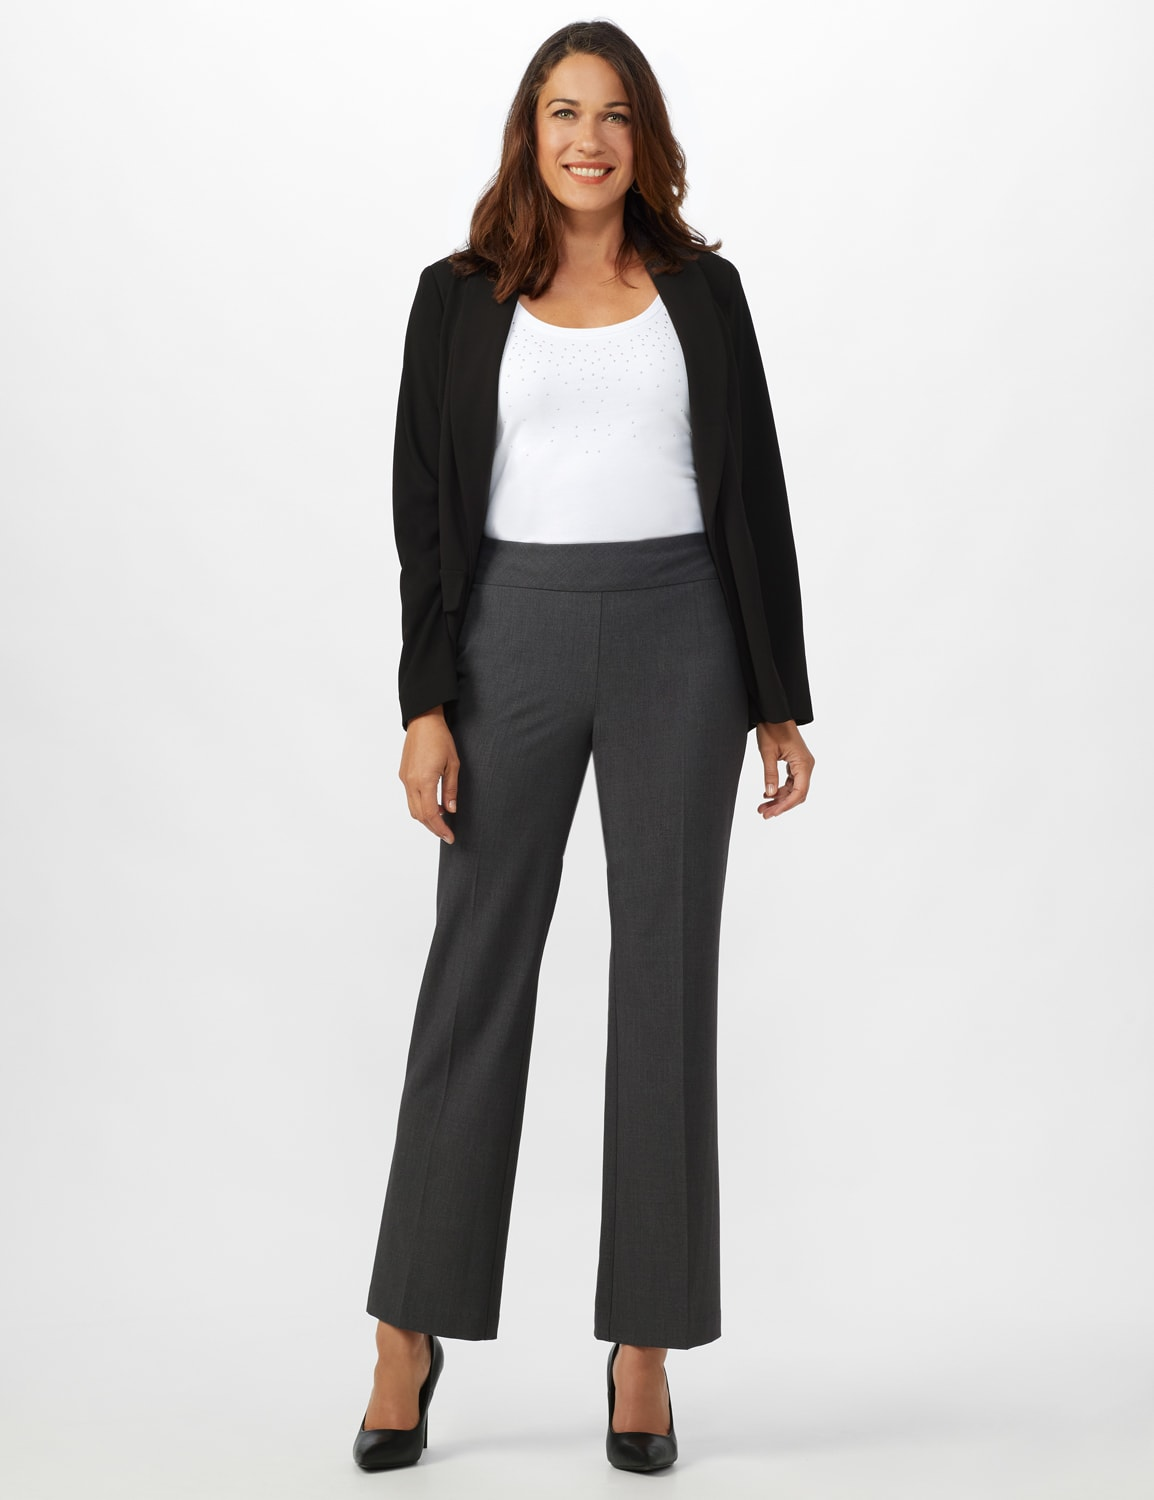 Roz & Ali Secret Agent Tummy Control Pants - Average Length - grey - Front